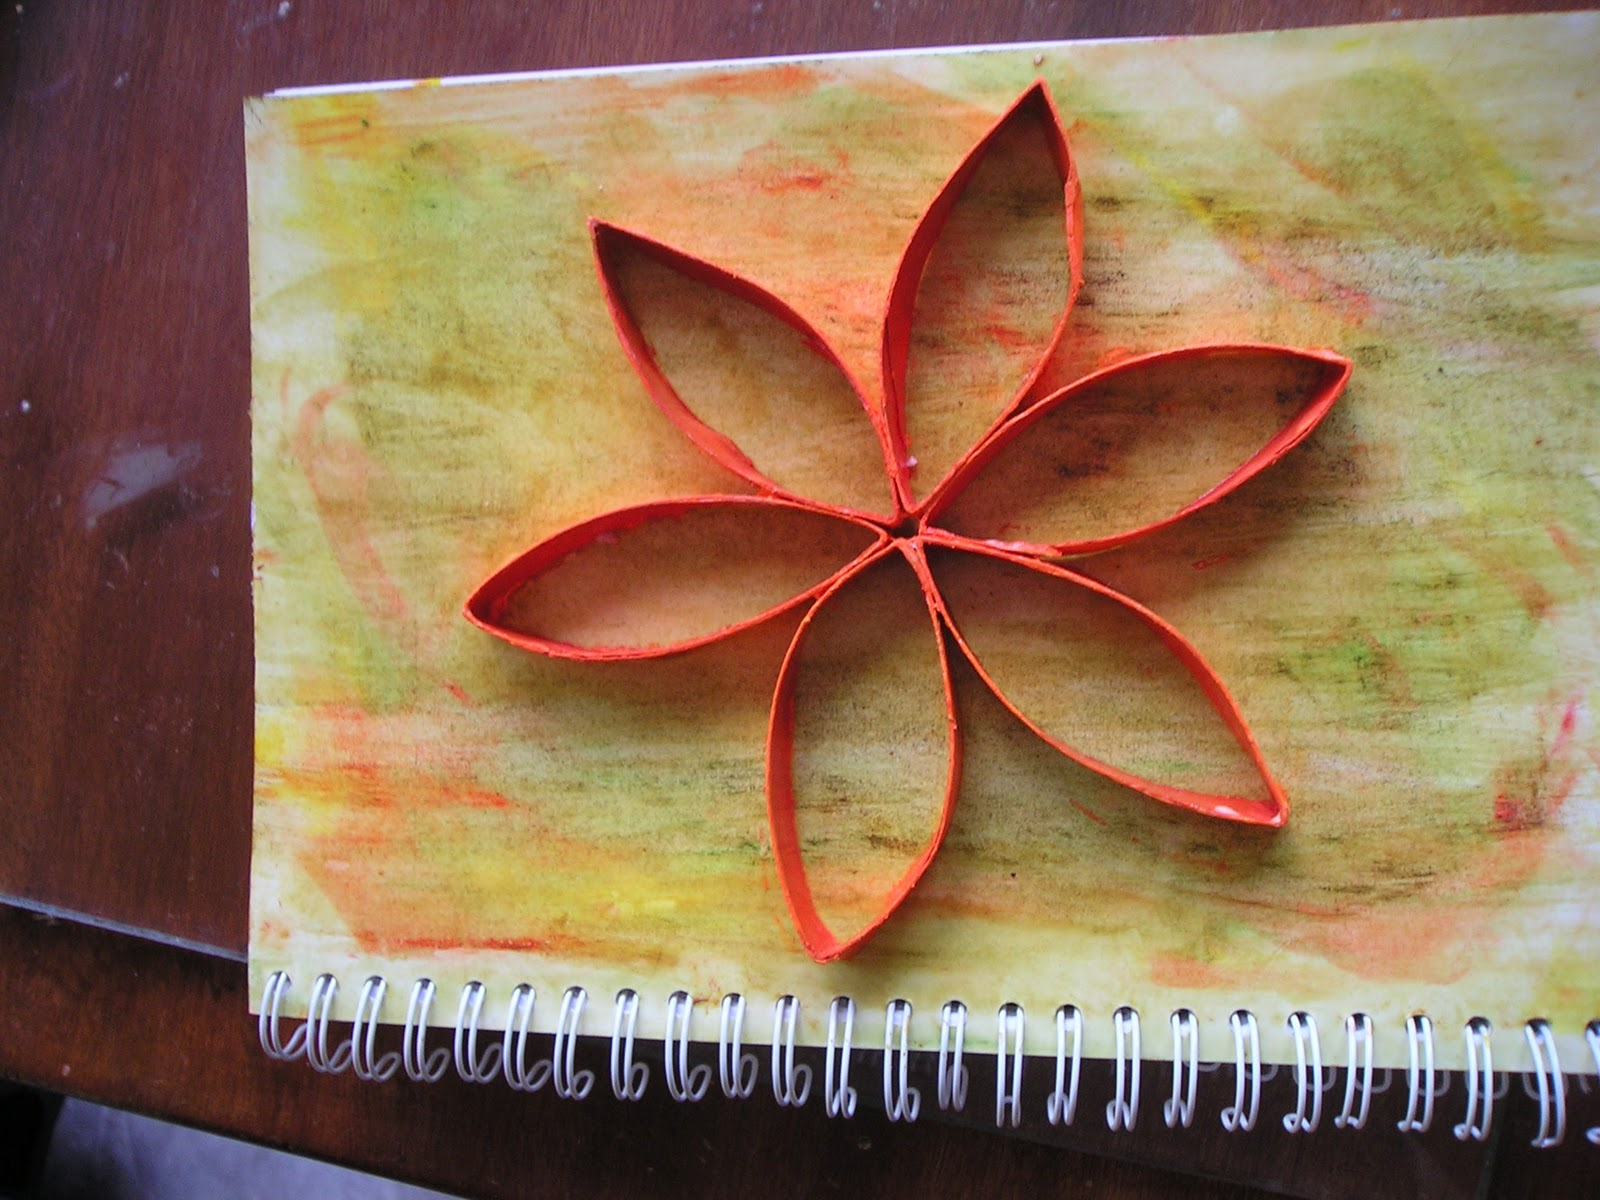 Toilet Roll Flower Notebook Decoration Saving The World One Day At